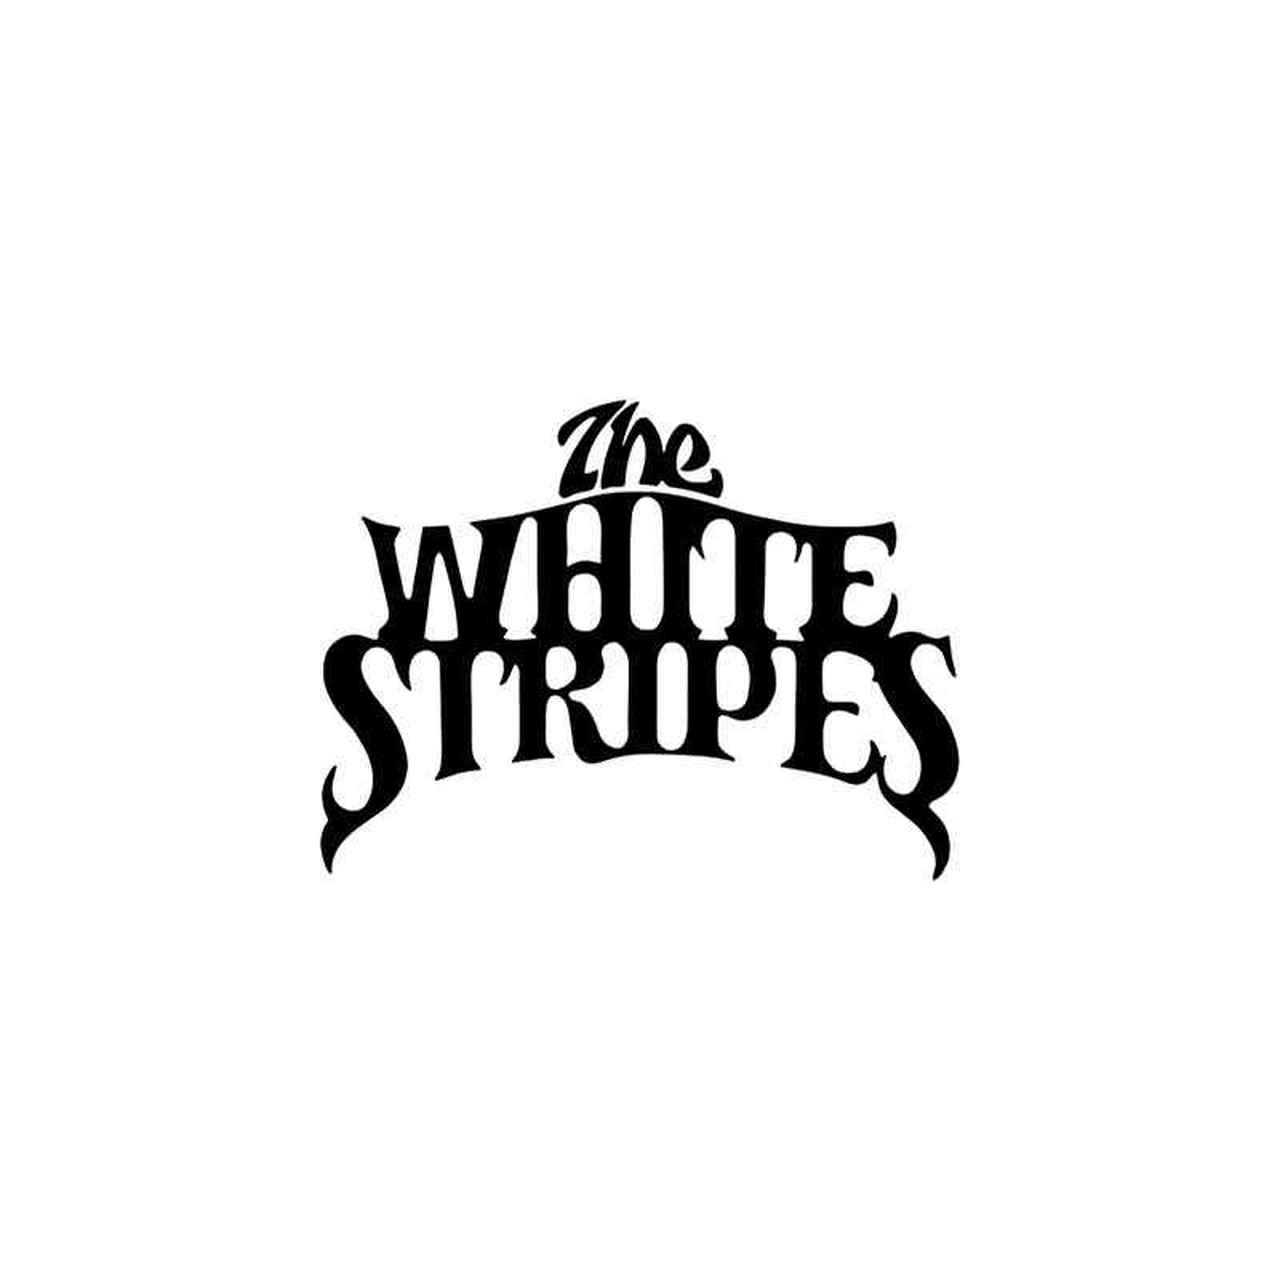 Rock Band s The White Stripes Vinyl Sticker.